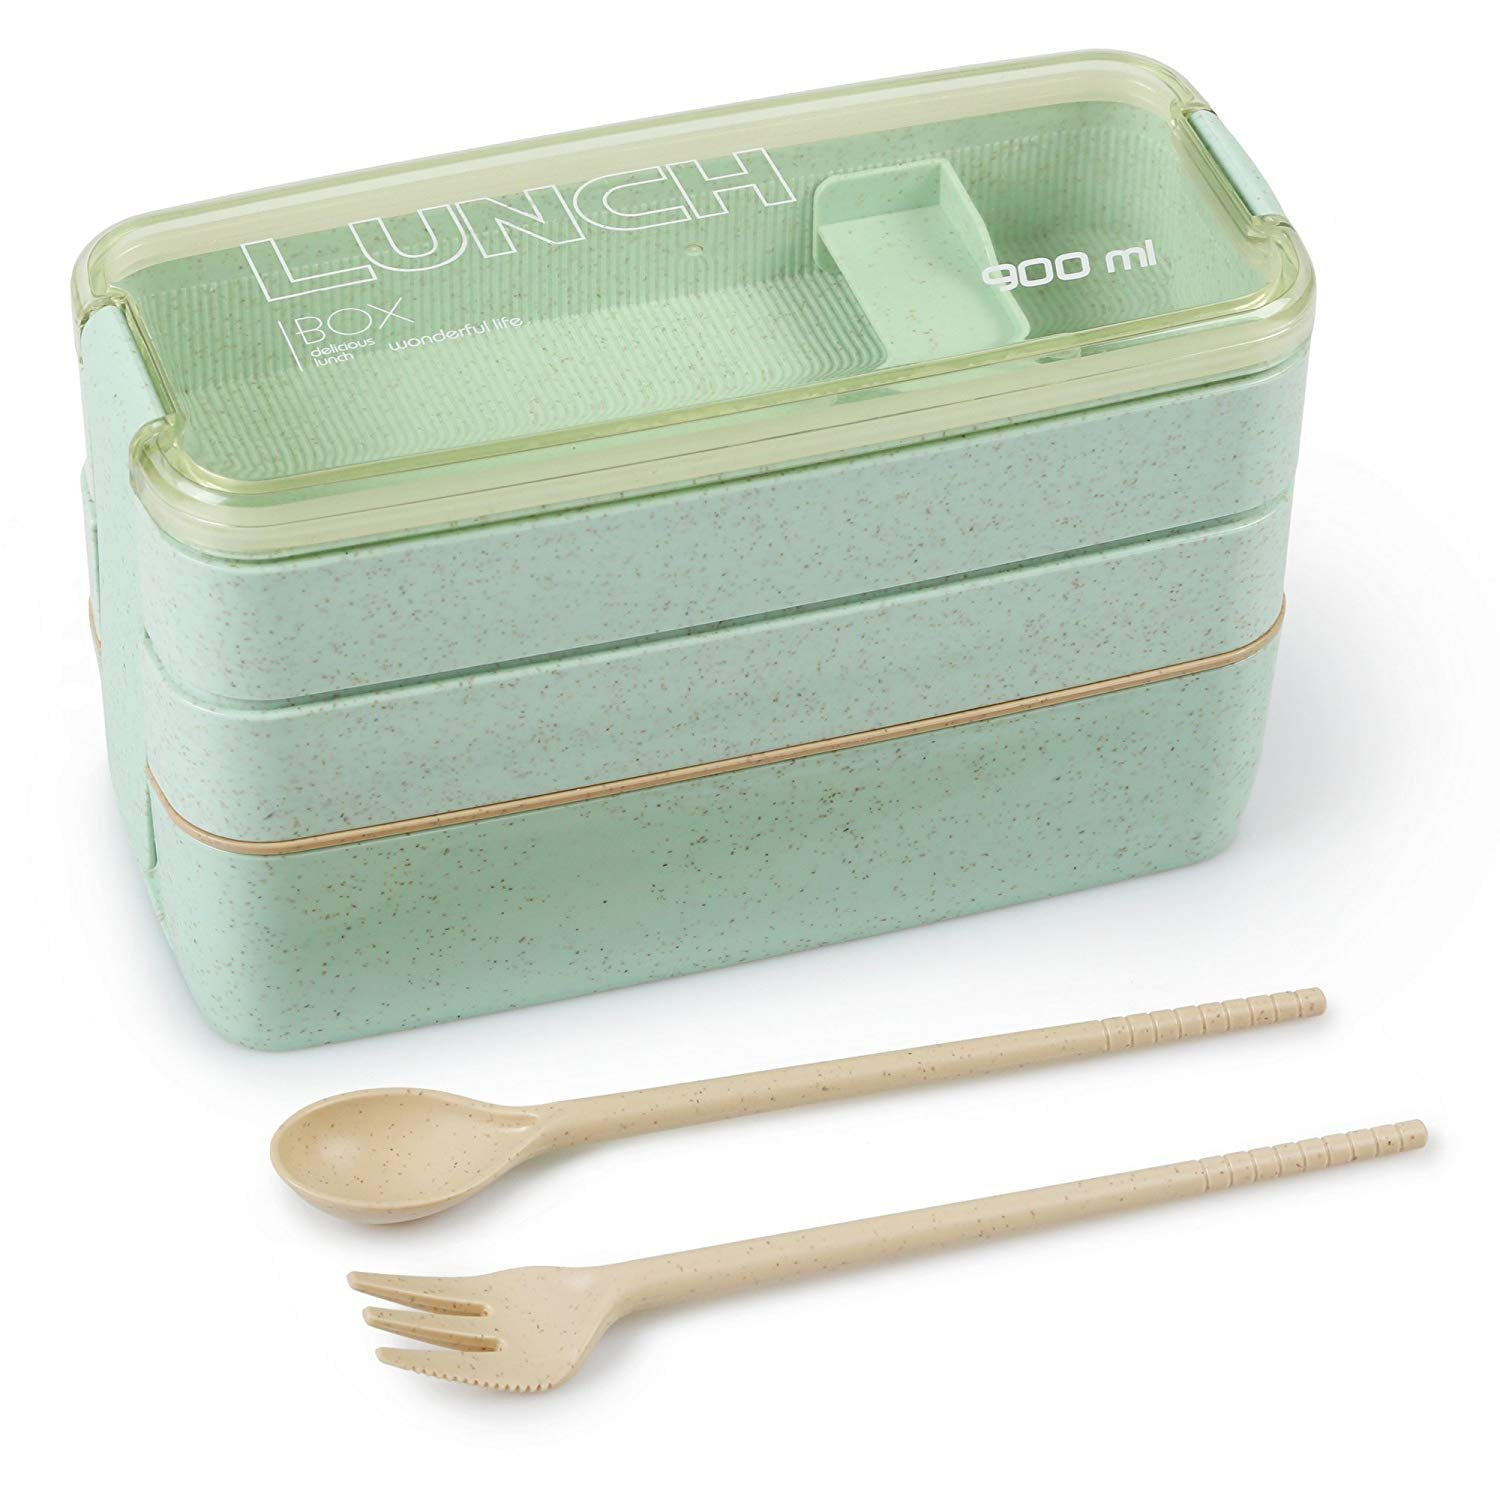 Eco-friendly Bento Lunch Box - Meal Prep Containers for Kids & Adults 3-in-1 Compartment - Wheat Straw, Leakproof (1)